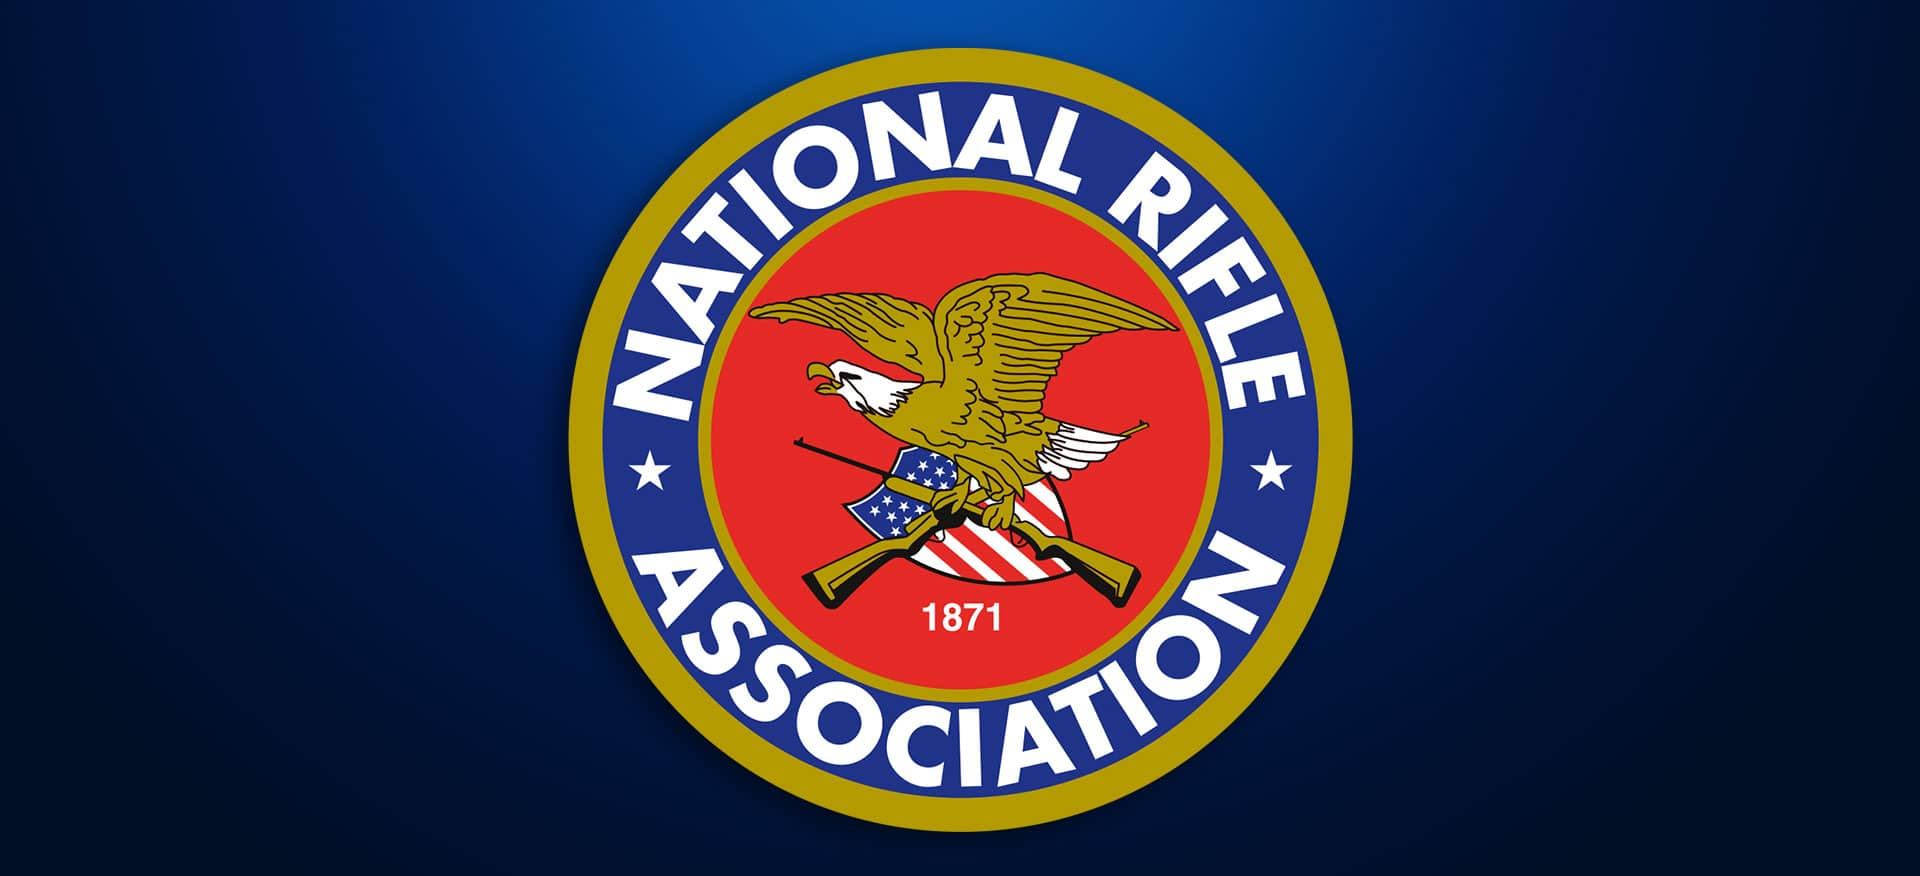 NY A.G Files Lawsuit To Dissolve National Rifle Association